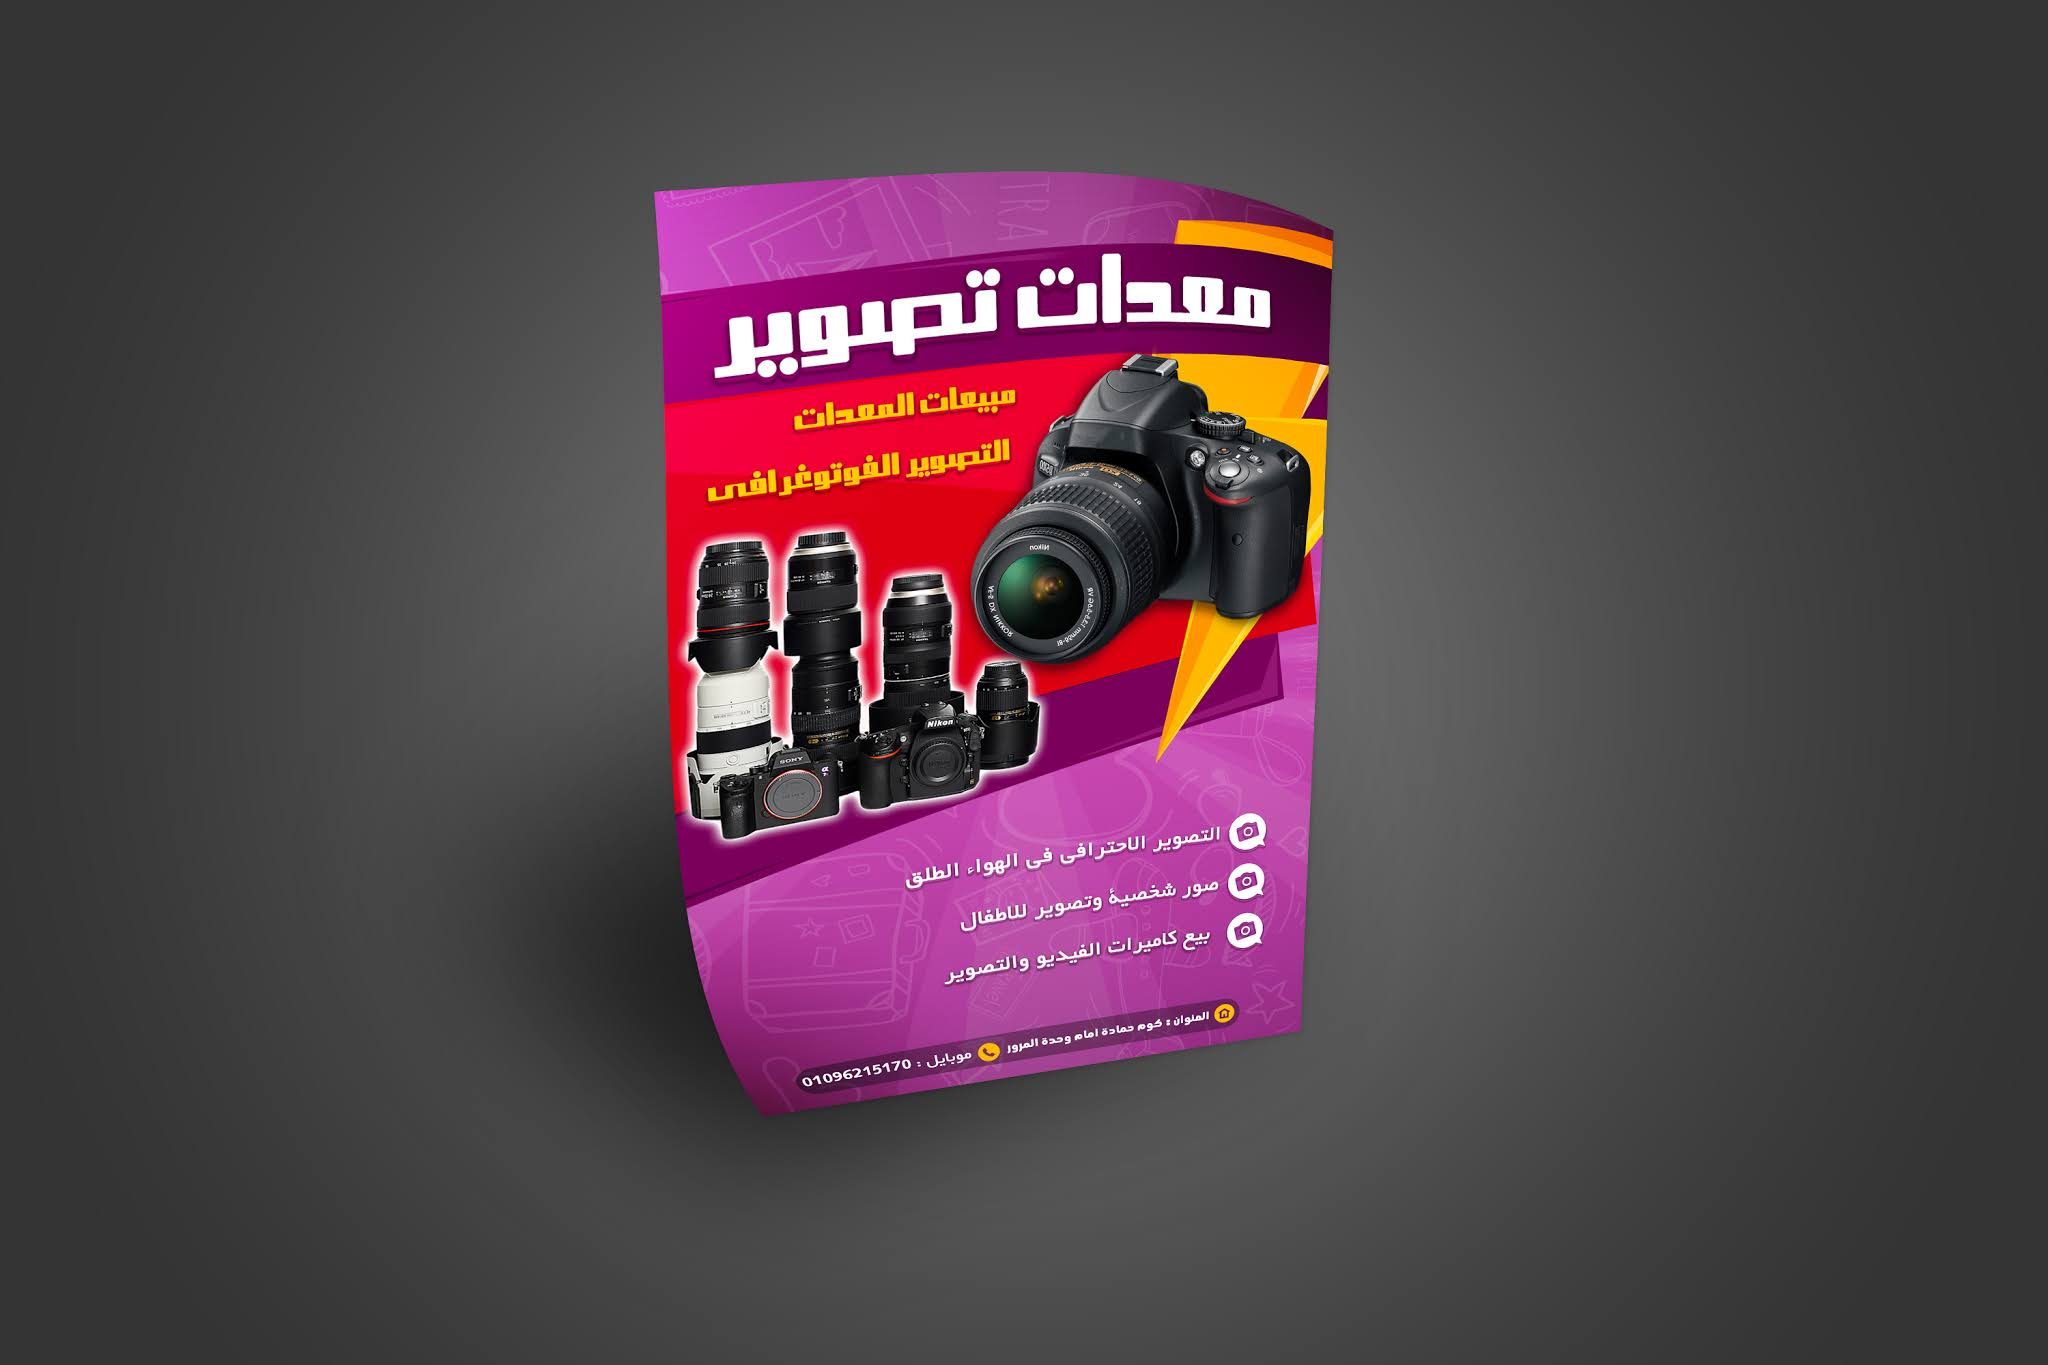 Professional PSD flyer design for photography and photography studio supplies